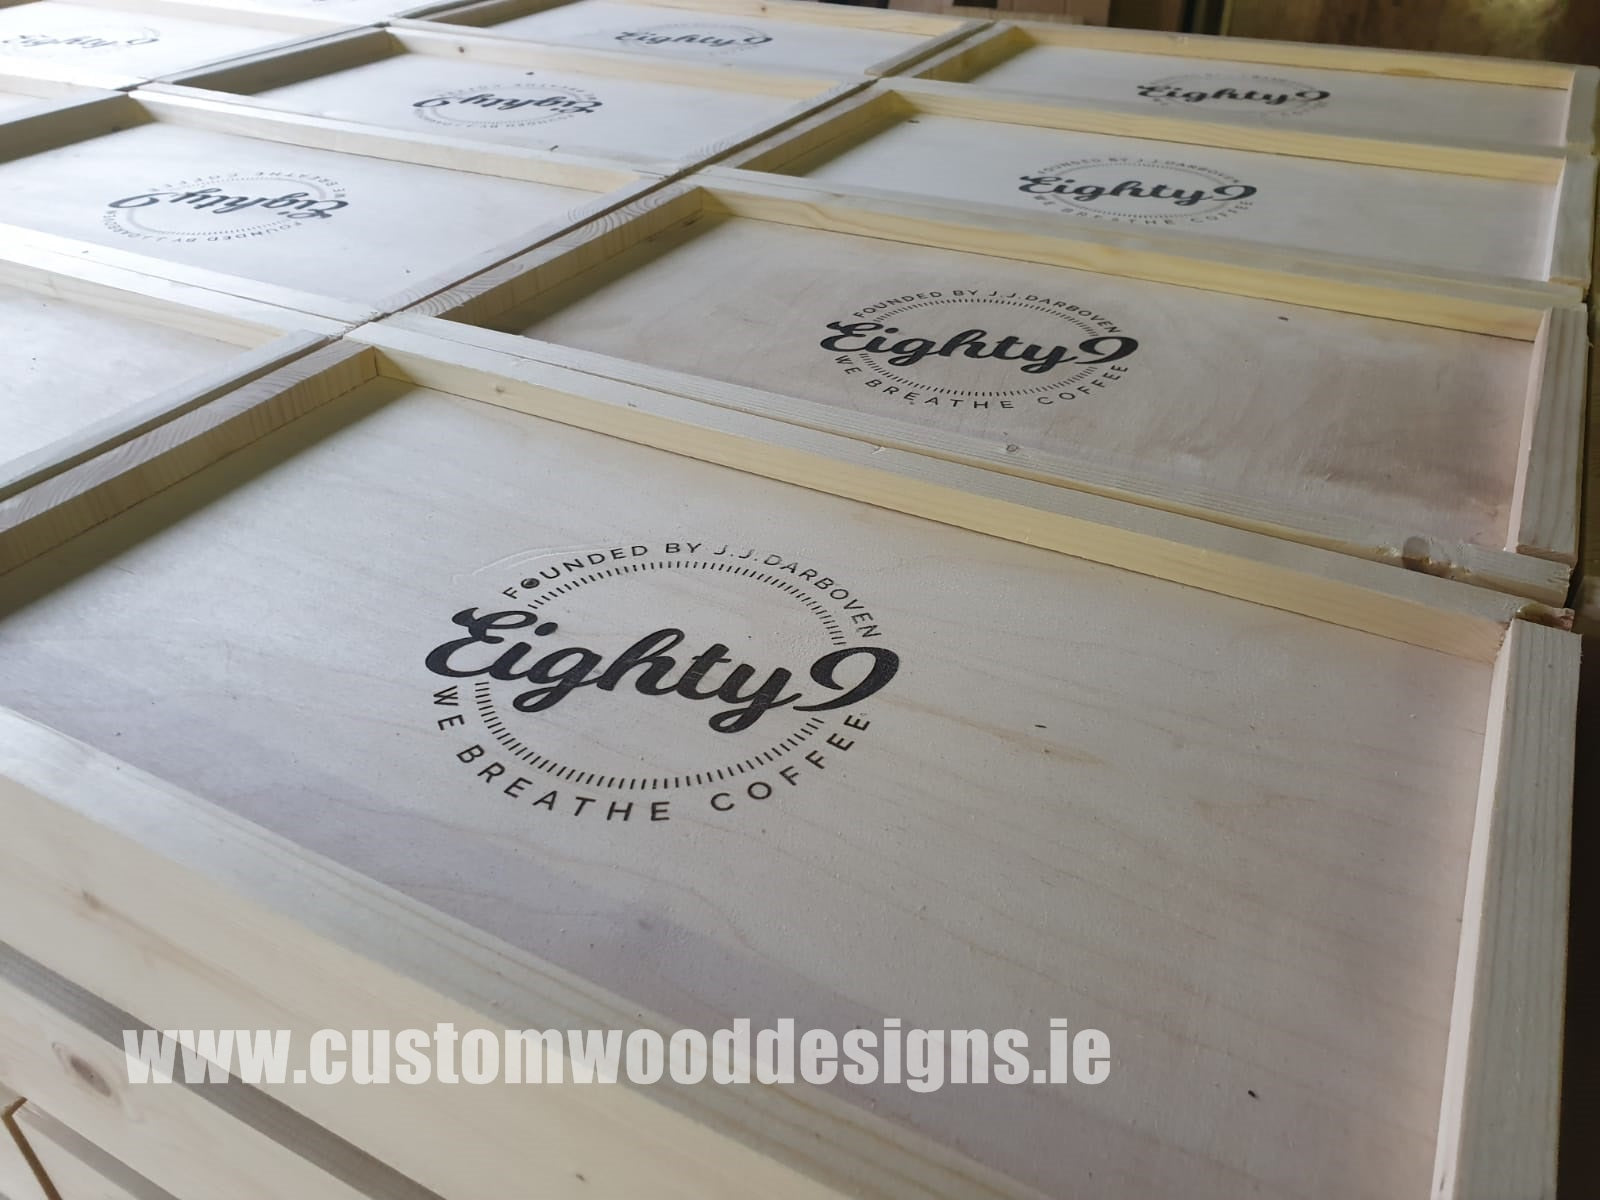 branded boxes crate large small mass produced Ireland custom wood designs hinged box sliding lid box laser engraved box packaging promotional marketing box corporate box drop idea worldwide irish box Custom Wood Designs Dublin Business Gary Byrne Klaudia Byrne Boxes Gallery , Irish Business Custom Wood Designs , Range of Wooden Boxes , Retail , Commercial and Wholesale . Wooden Corporate Gifting . Packaging . Branding . Occasion Boxes , Wooden Sliding Lid Boxes , Hinged Boxes , Stained Boxes , Painted Boxes , Boxes with Clasps , Hamper Boxes , Corporate Gifting Boxes , Custom Wood Designs Marketing Boxes Promotional Boxes Dublin Ireland Irish Boxes Solid Wood Boxes Award Boxes Product Boxes Ireland Eco Boxes Product Mass Produced Name Box Custom Wood Designs Dublin Business Gary Byrne Klaudia Byrne Boxes Gallery , Irish Business Custom Wood Designs , Range of Wooden Boxes , Retail , Commercial and Wholesale . Wooden Corporate Gifting . Packaging . Branding . Occasion Boxes , Wooden Sliding Lid Boxes , Hinged Boxes , Stained Boxes , Painted Boxes , Boxes with Clasps , Hamper Boxes , Corporate Gifting Boxes , Custom Wood Designs Marketing Boxes Promotional Boxes Dublin Ireland Irish Boxes Solid Wood Boxes Award Boxes Product Boxes Ireland Eco Boxes Product Mass Produced Name Box  branded boxes mass produced ireland cusom wood designs hinged box sliding lid box laser engraved box packaging promotional marketing box corporate box drop idea worldwide irish box Custom Wood Designs Dublin Business Gary Byrne Klaudia Byrne Boxes Gallery , Irish Business Custom Wood Designs , Range of Wooden Boxes , Retail , Commercial and Wholesale . Wooden Corporate Gifting . Packaging . Branding . Occasion Boxes , Wooden Sliding Lid Boxes , Hinged Boxes , Stained Boxes , Painted Boxes , Boxes with Clasps , Hamper Boxes , Corporate Gifting Boxes , Custom Wood Designs Marketing Boxes Promotional Boxes Dublin Ireland Irish Boxes Solid Wood Boxes Award Boxes Product Boxes Ireland Eco Boxes Pr